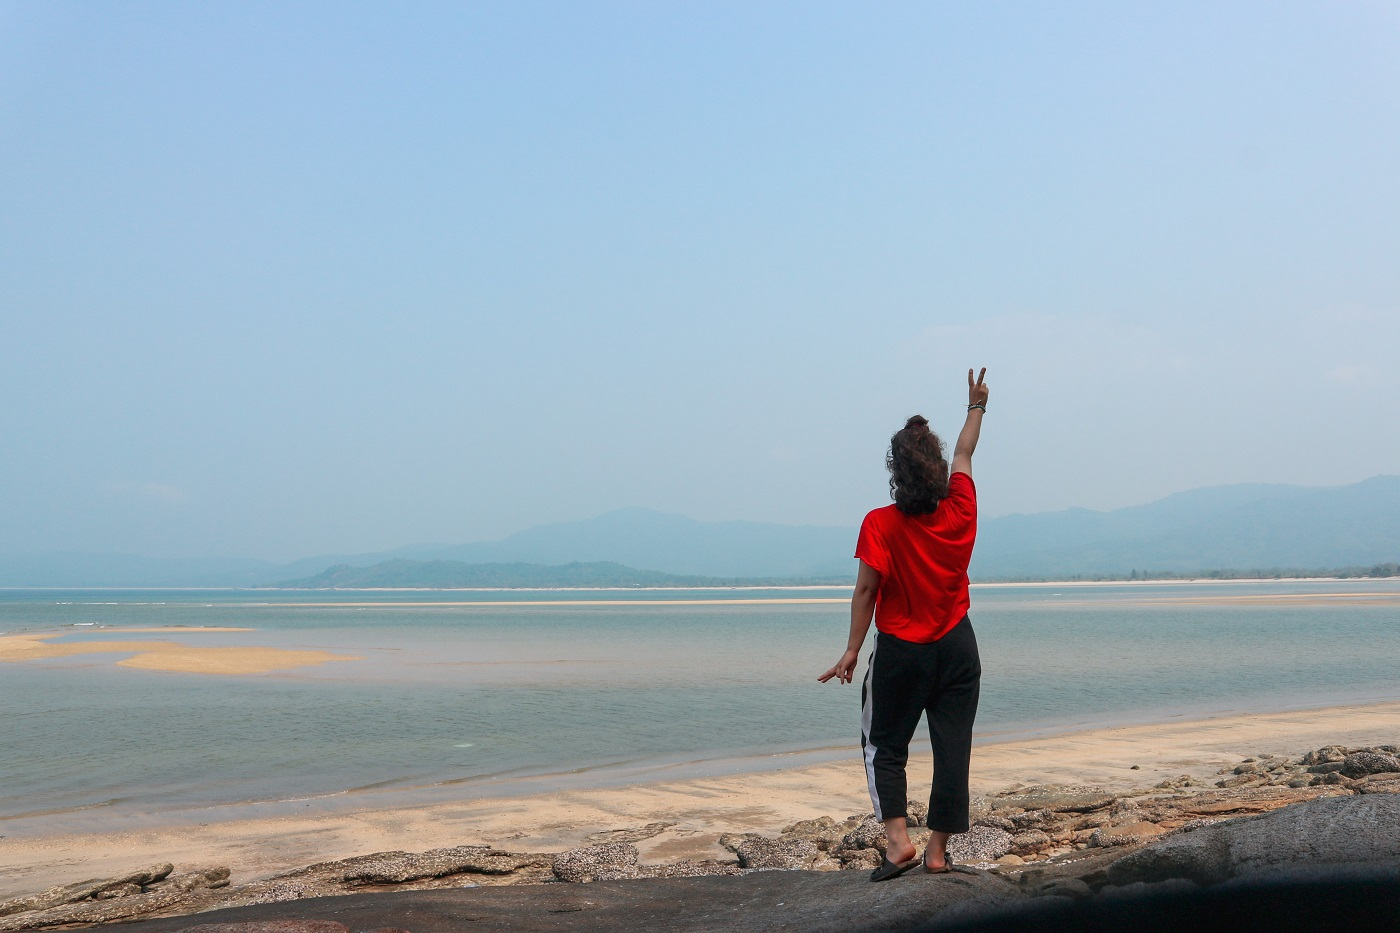 Exploring Dawei beaches by motorbike on my own